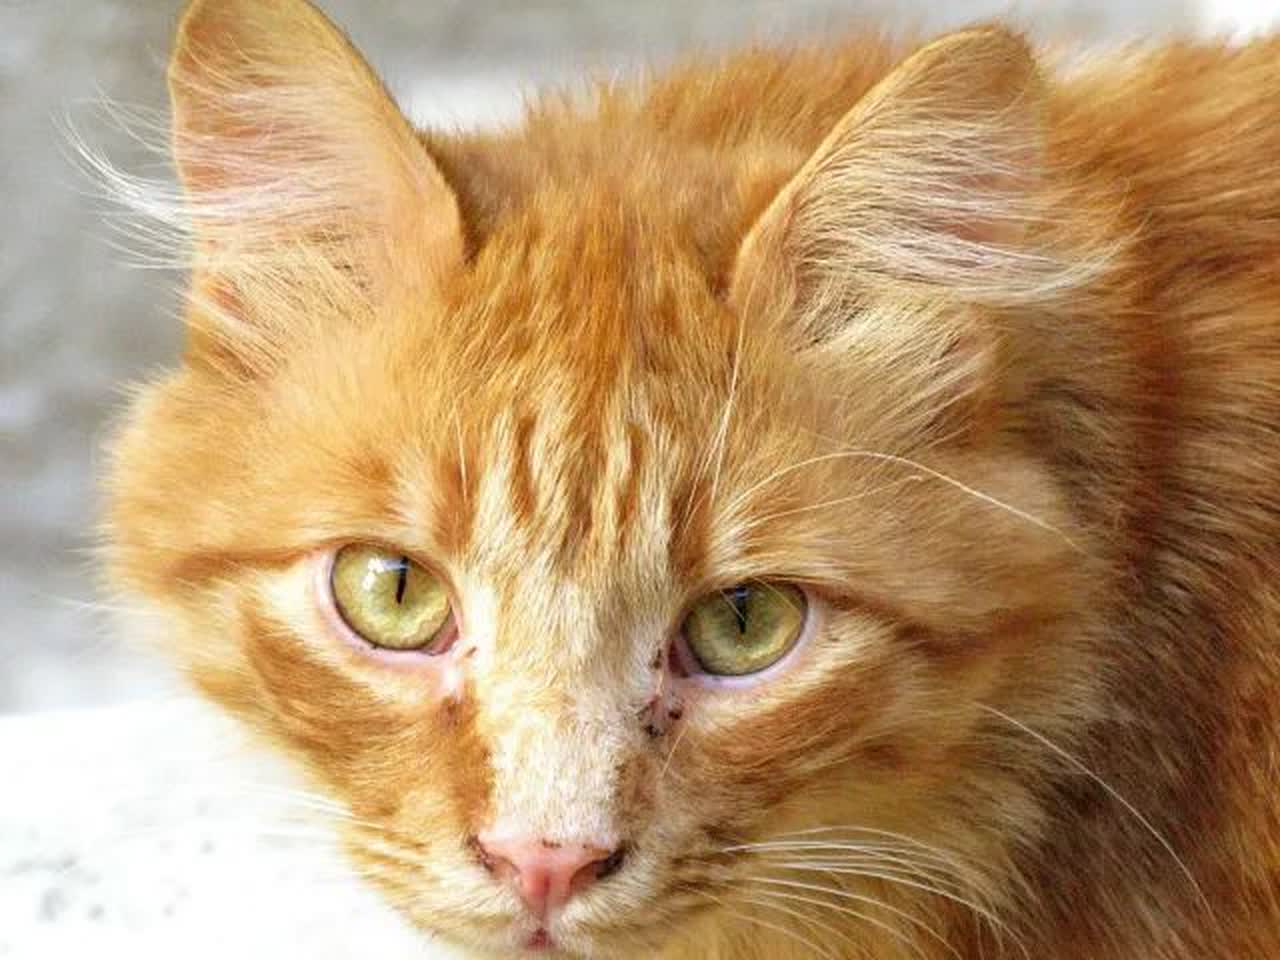 An aging orange tabby with black spots on its face.